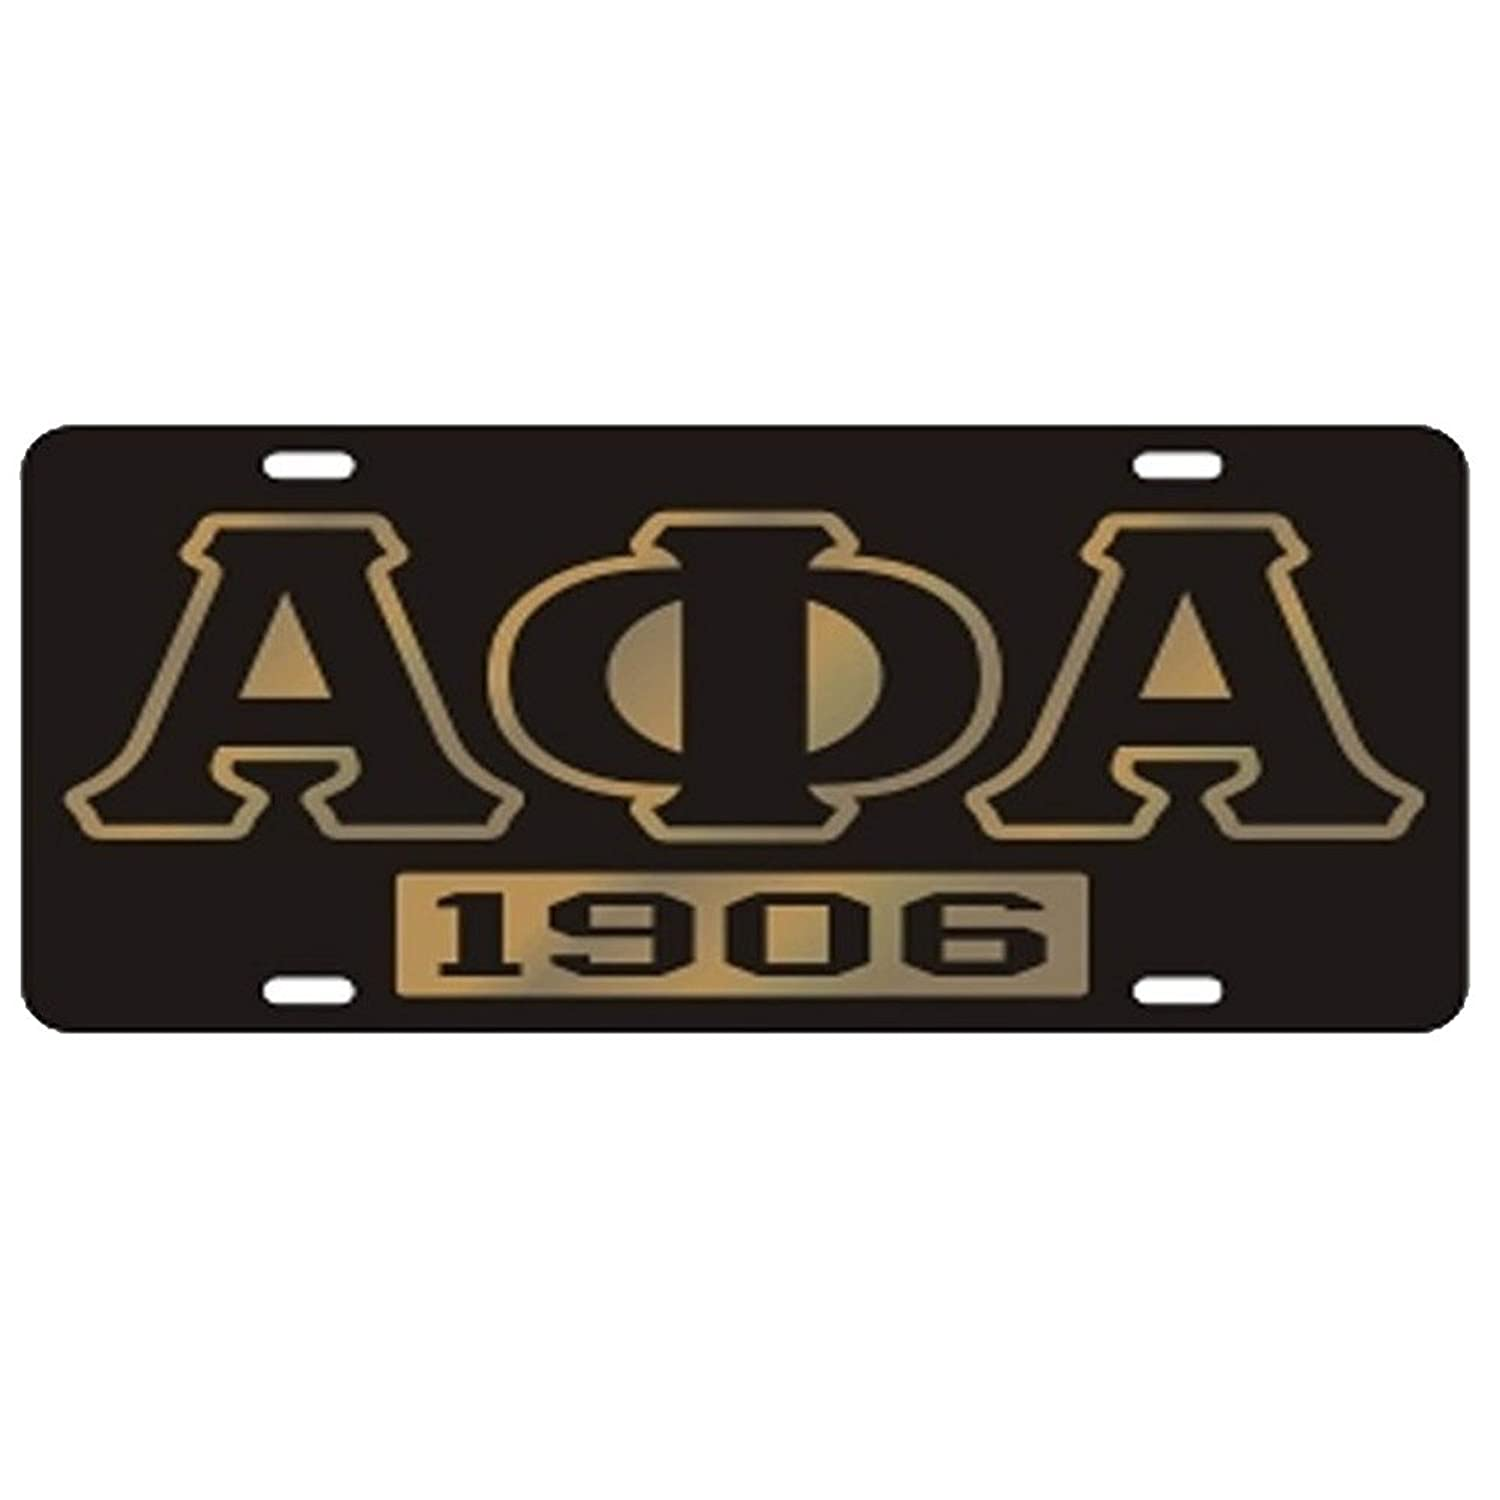 Amazon.com: Alpha Phi Alpha License Plate - Black, Founded: Clothing